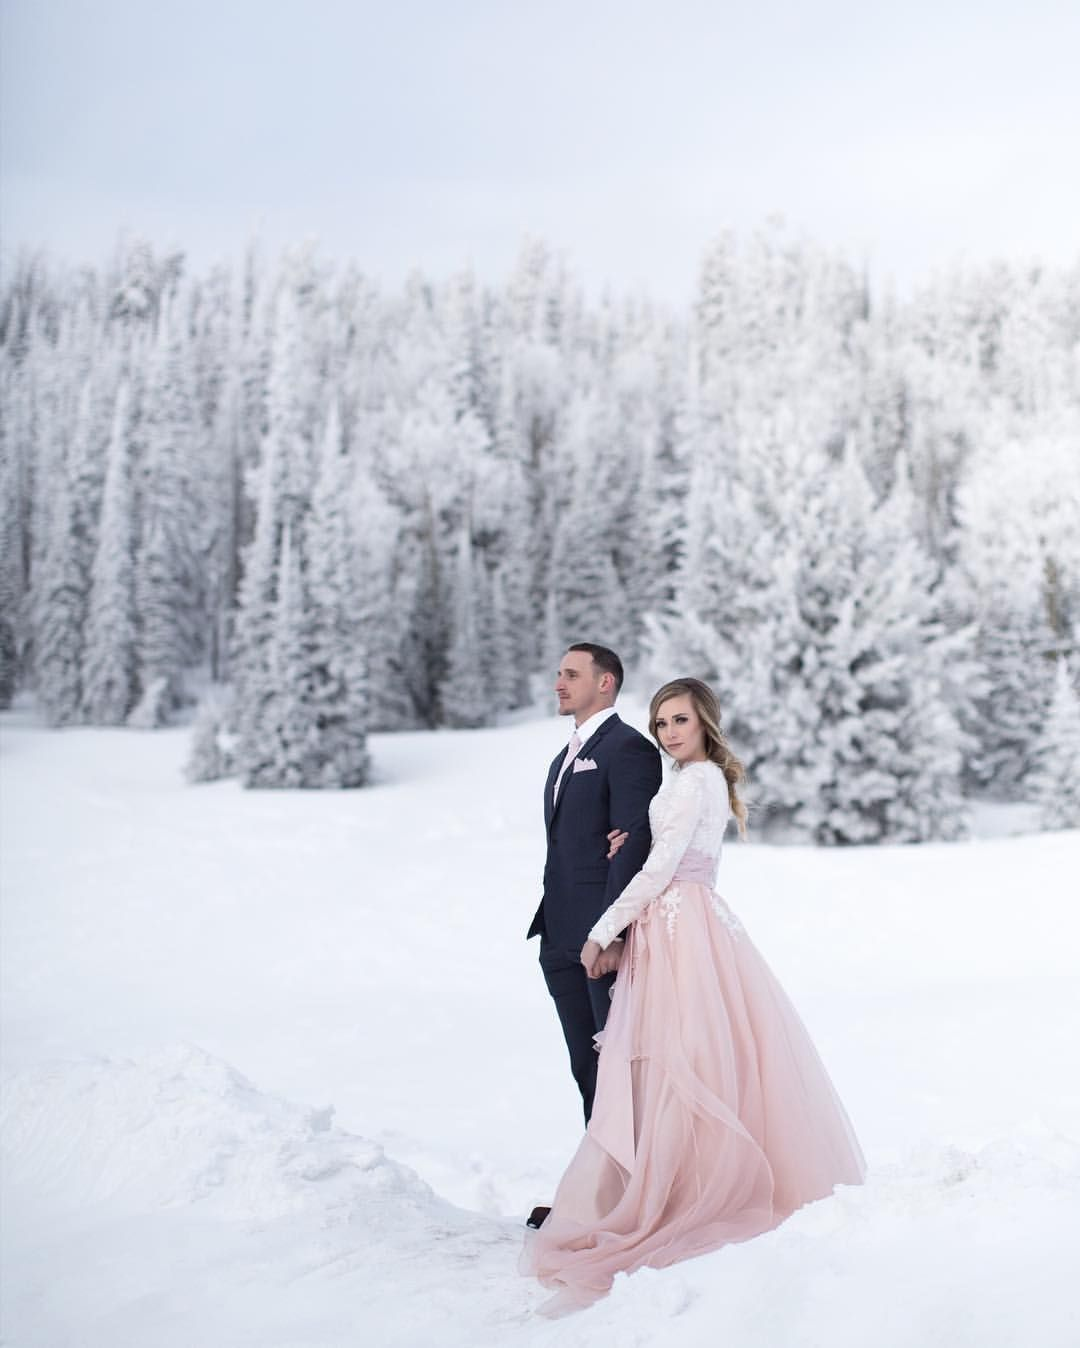 Snow Wedding Ideas: #wedding #couples #winterwedding